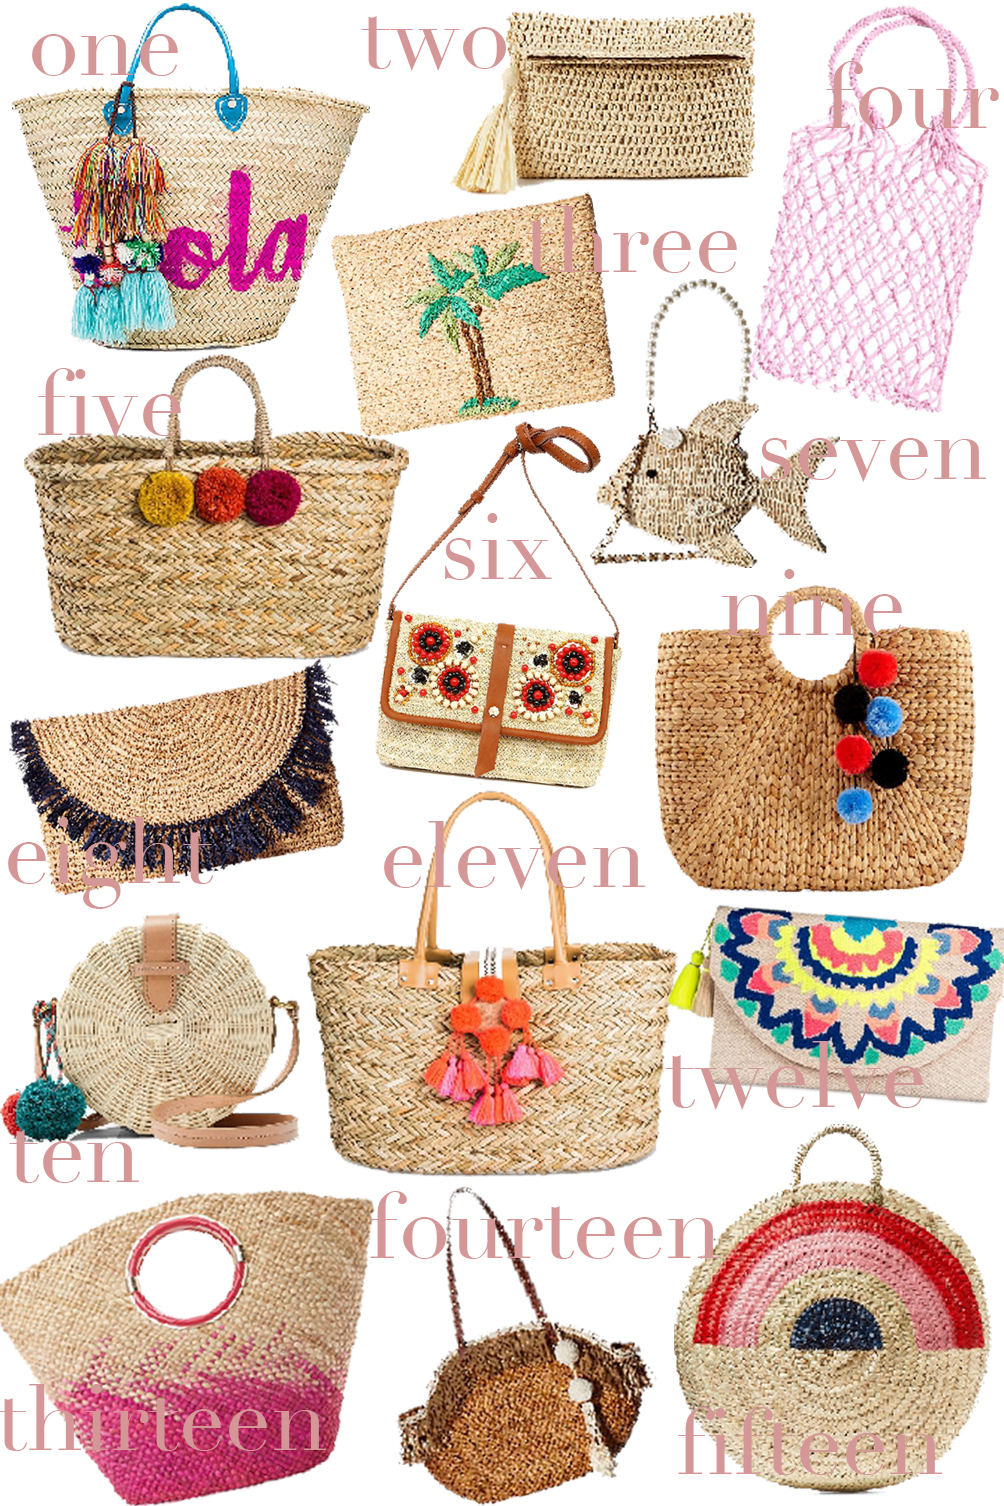 straw bags - woven trend for spring and summer